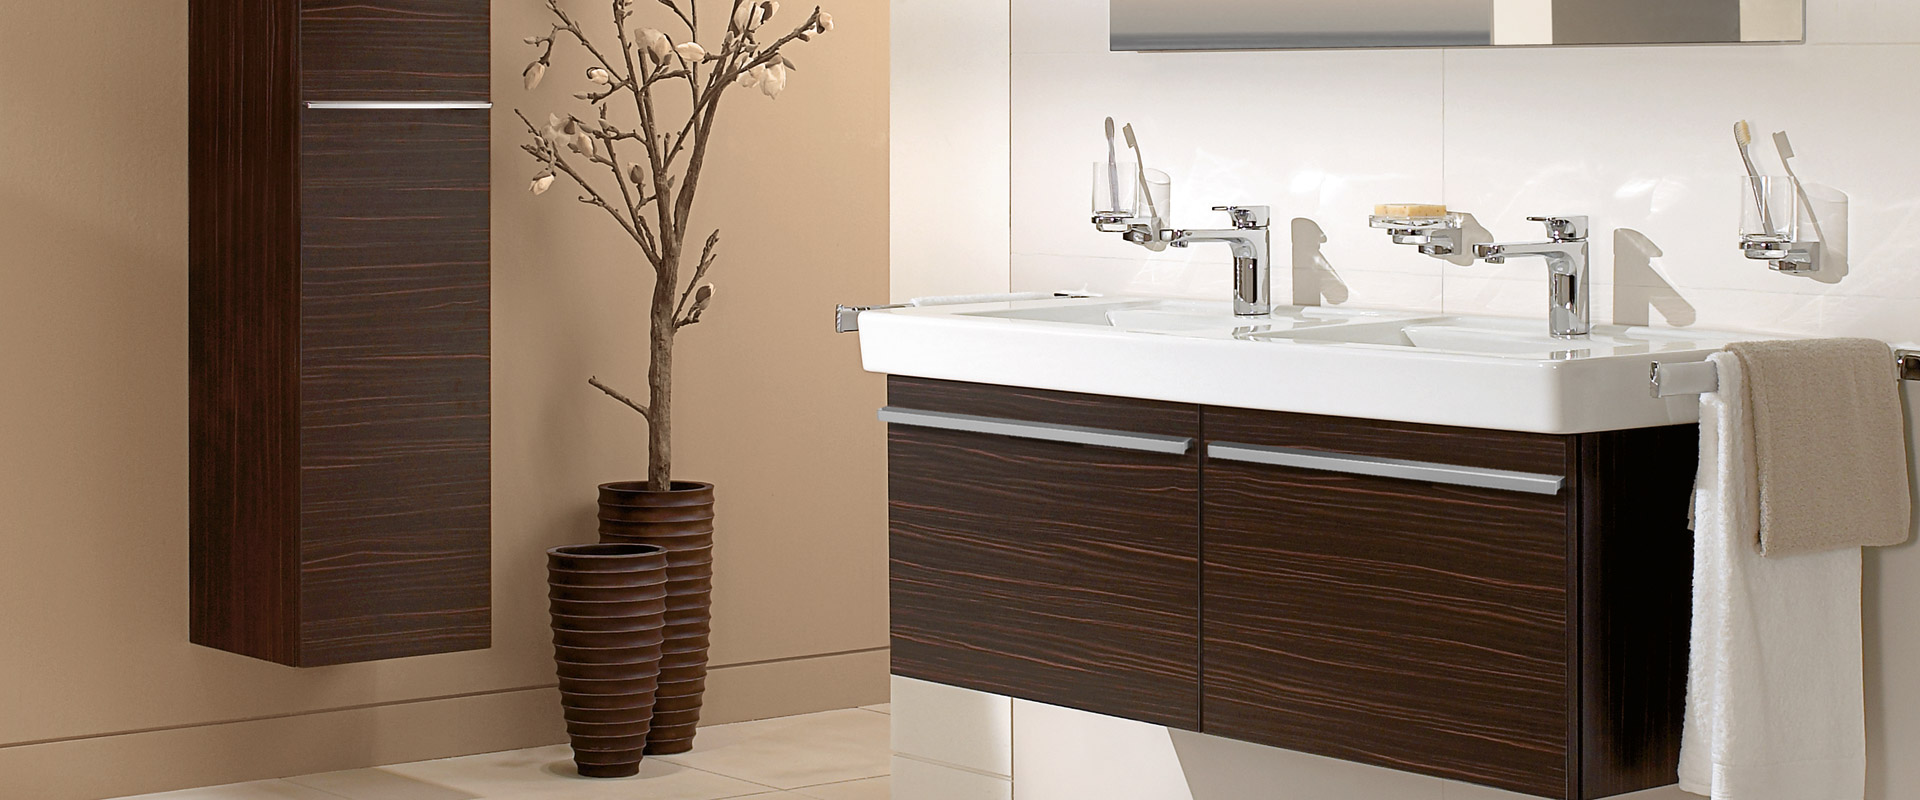 Villeroy and boch bathroom cabinets - Central Line Frn